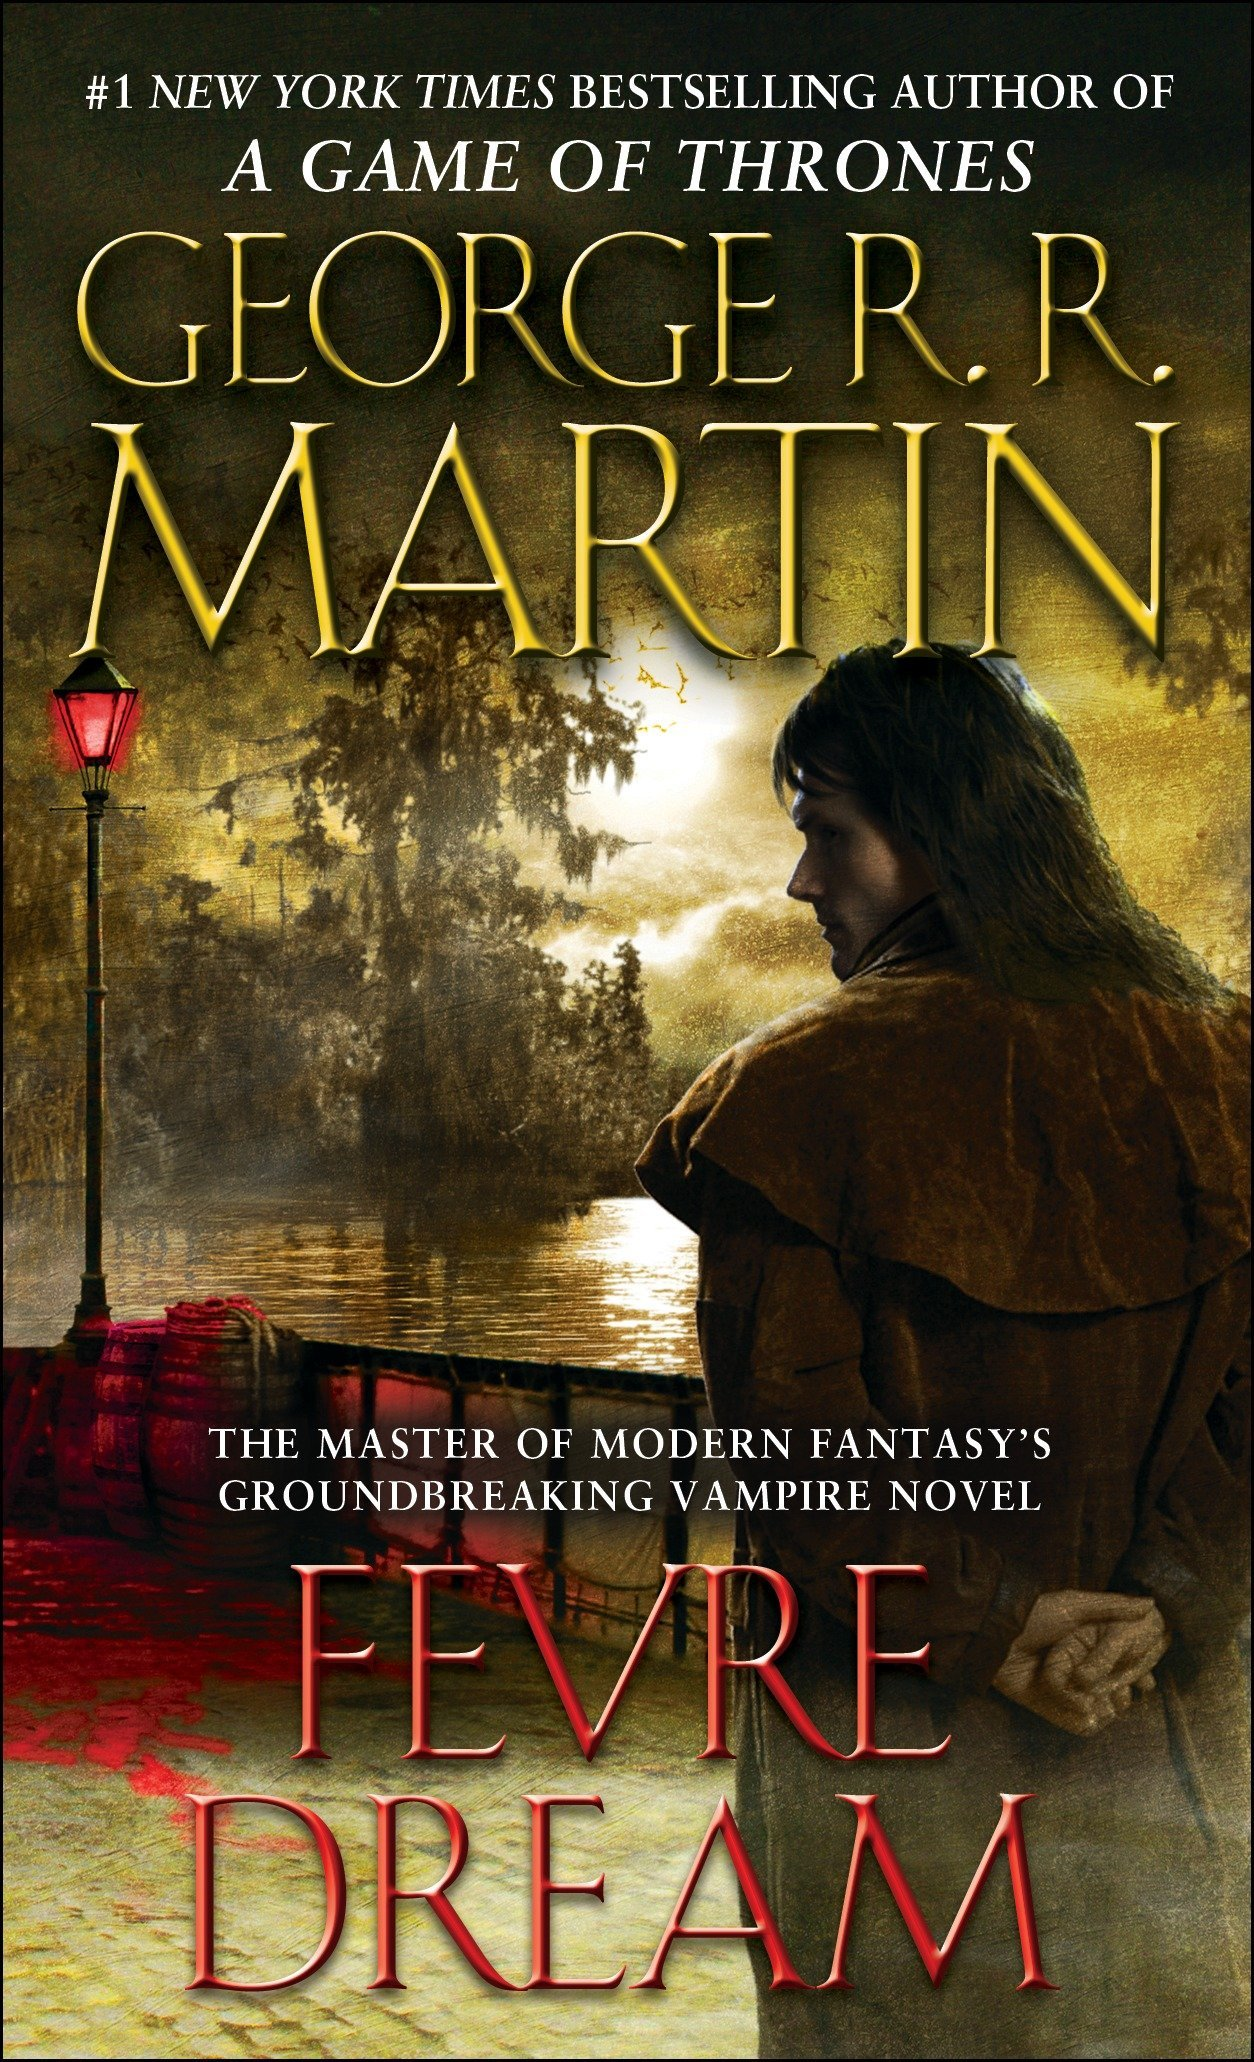 Amazon.com: Fevre Dream: A Novel (8601400273982): Martin, George R. R.: Books